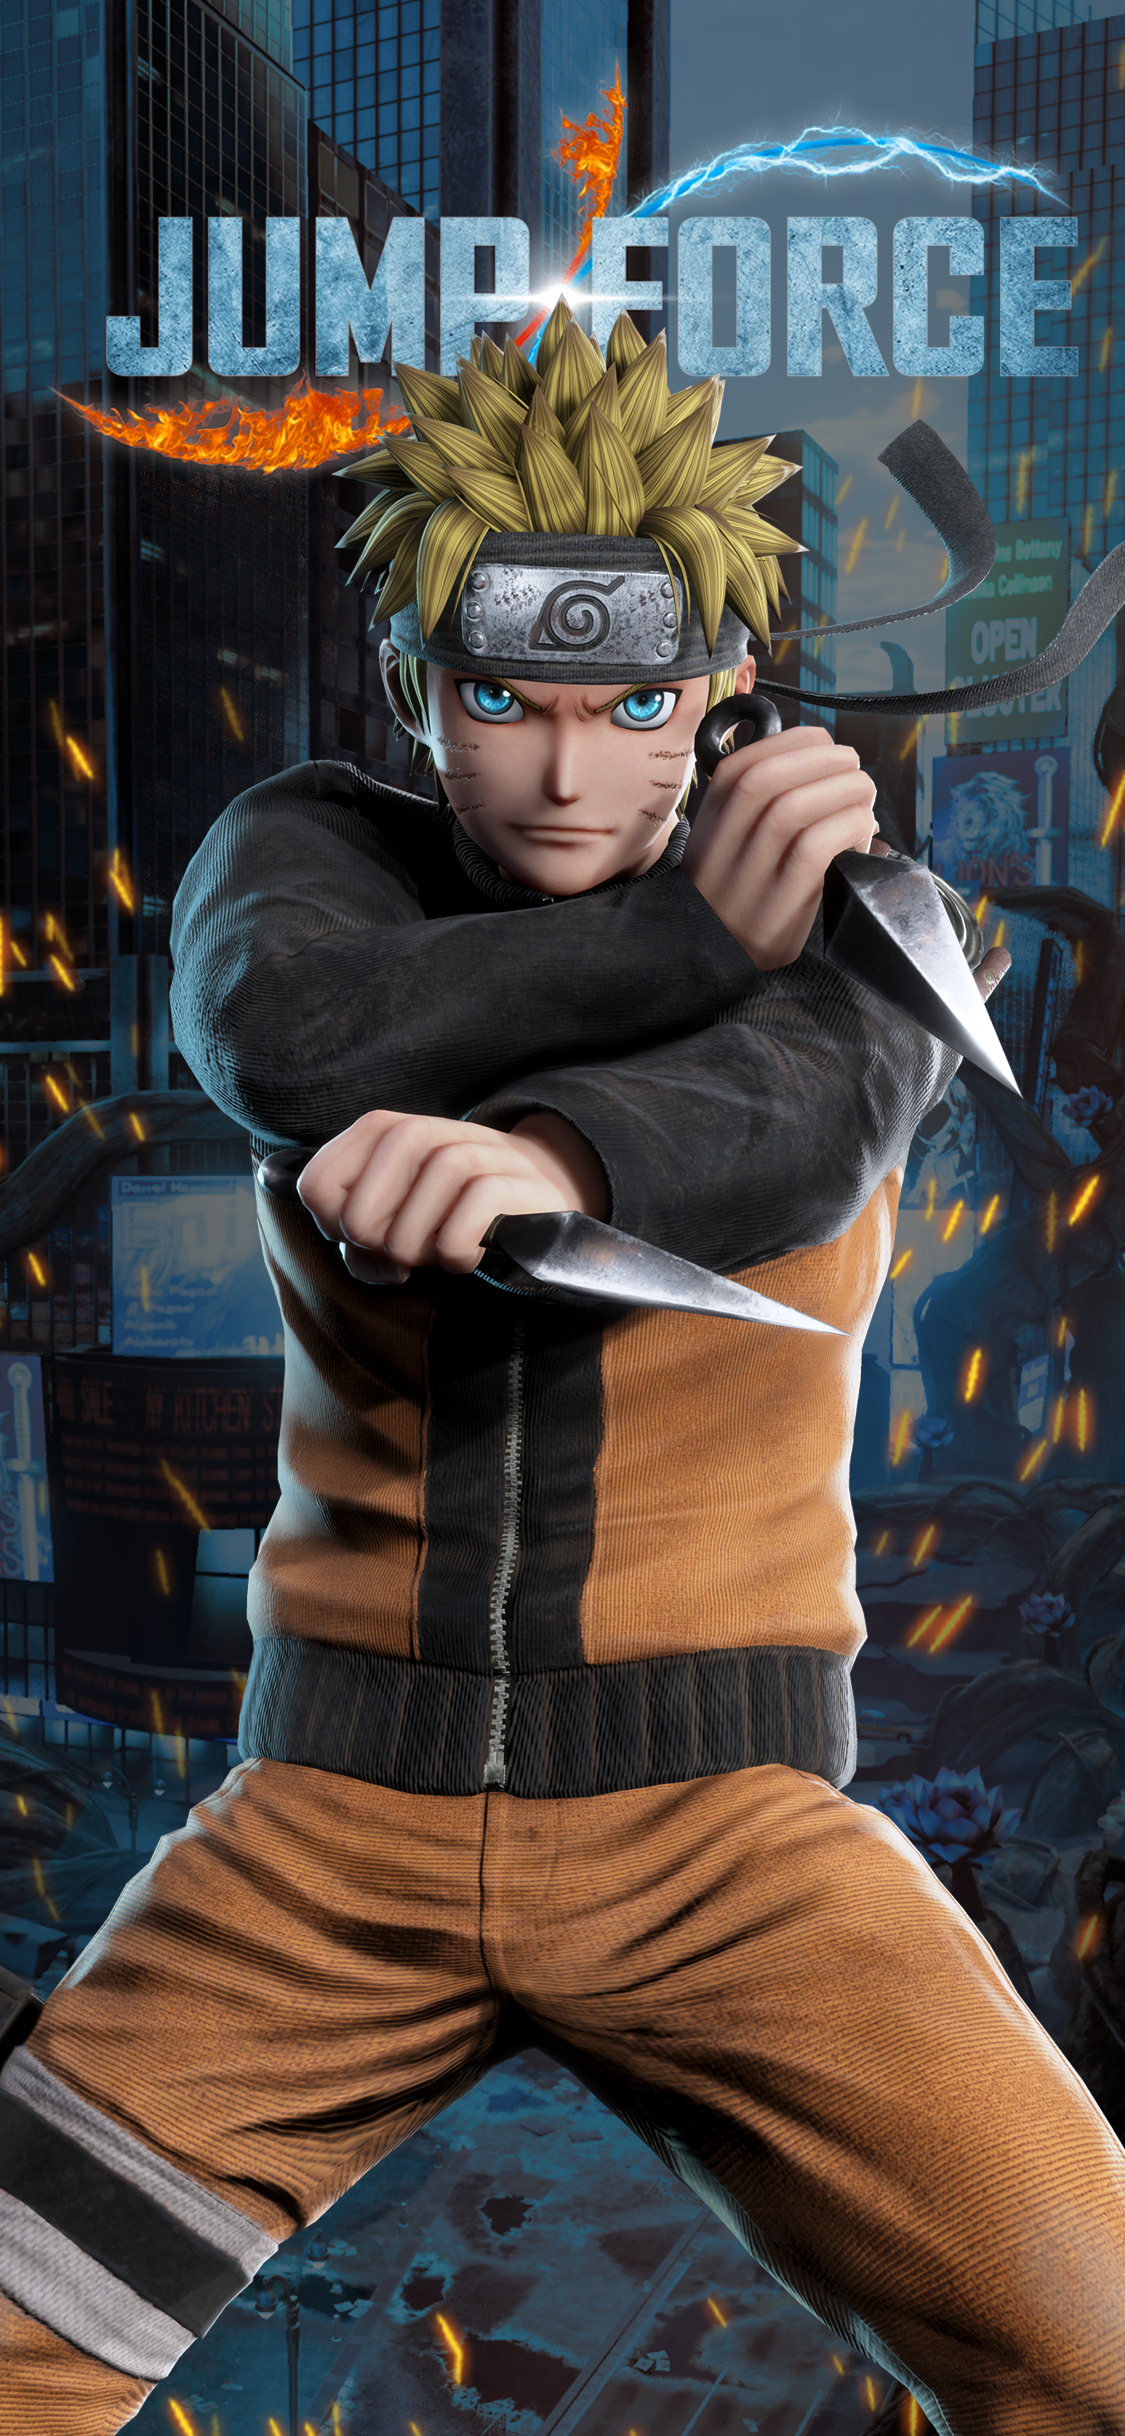 Wallpaper Naruto Iphone Jump Force Naruto Wallpapers Cat With Monocle